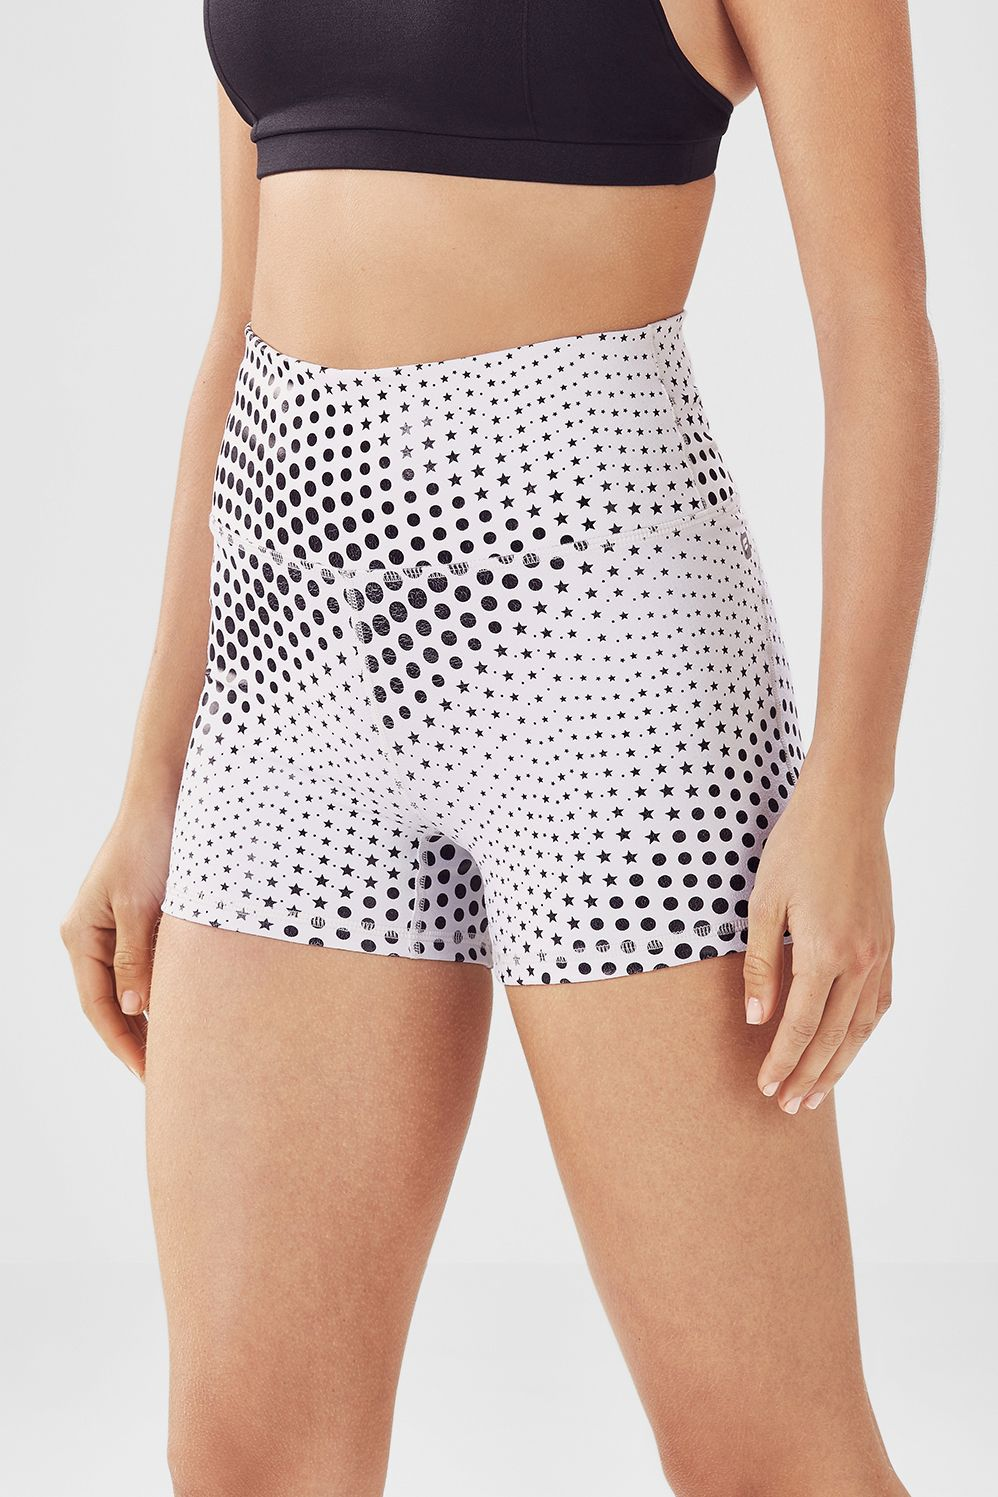 e4e2f43d3eb High-Waisted Solid PowerHold® Short | Workout clothes - fabletics ...